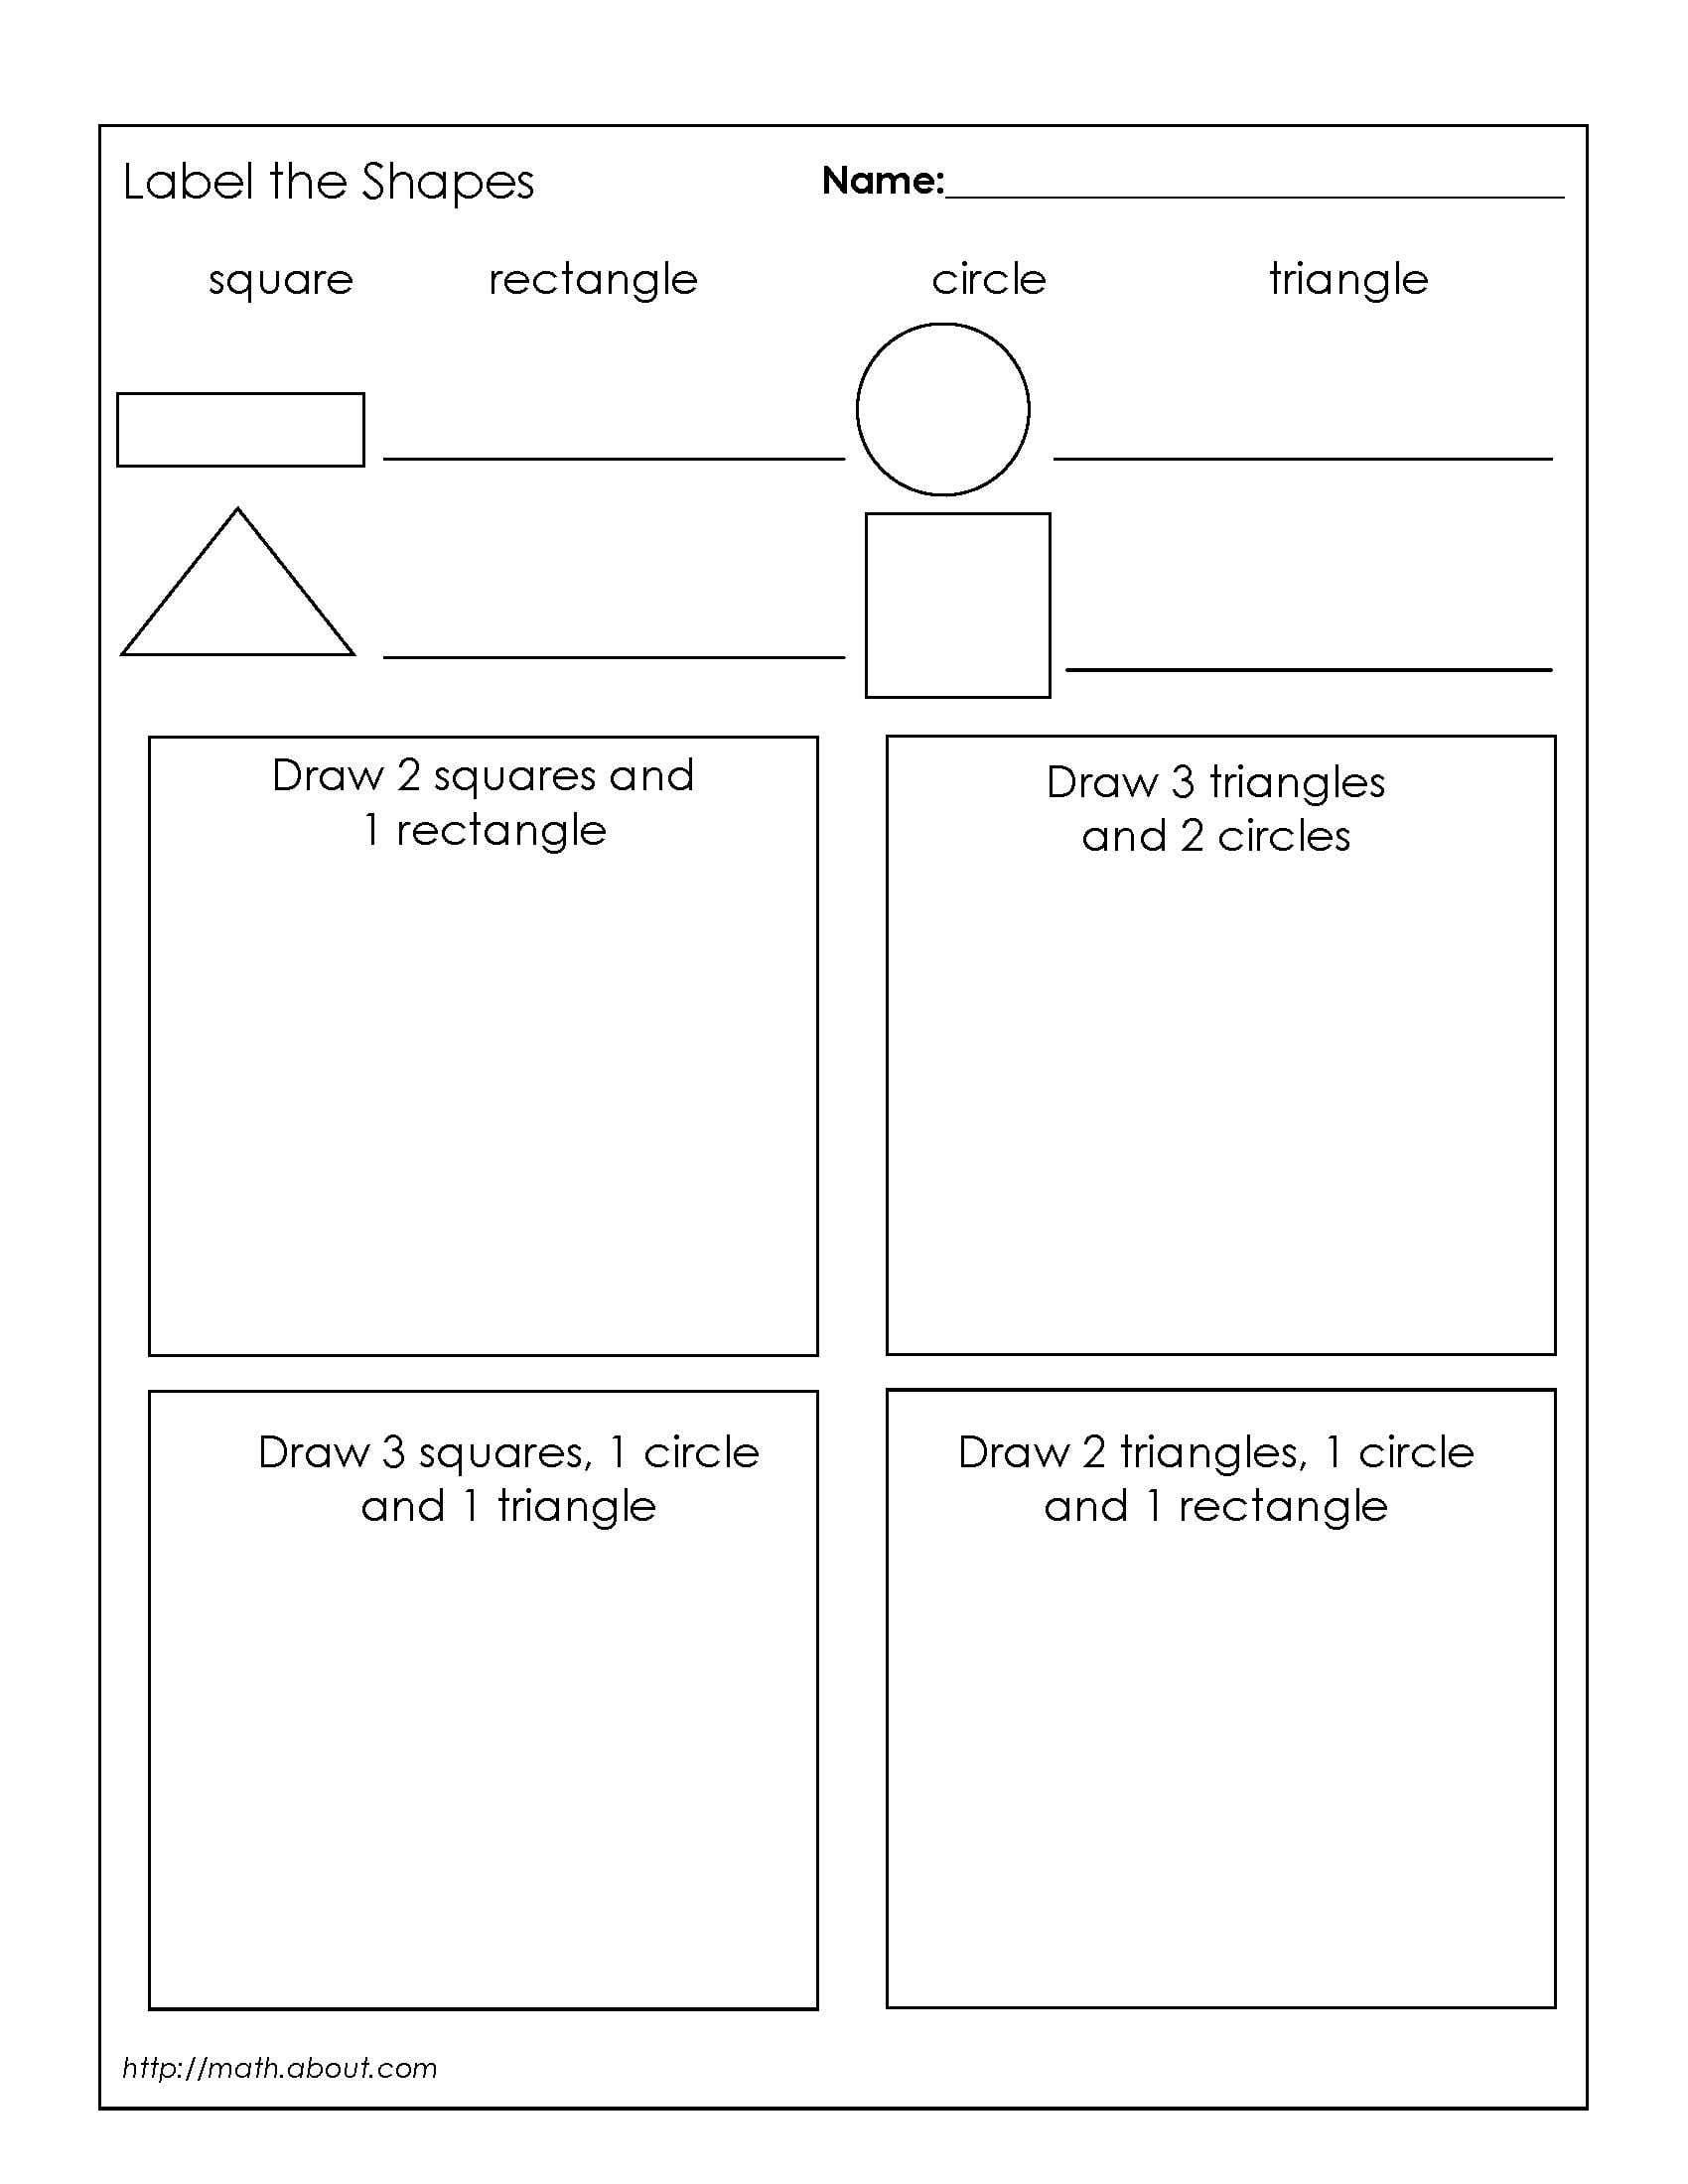 Uncategorized Maths Shapes Worksheets grade 1 geometry worksheets first math for kindergarten shapes